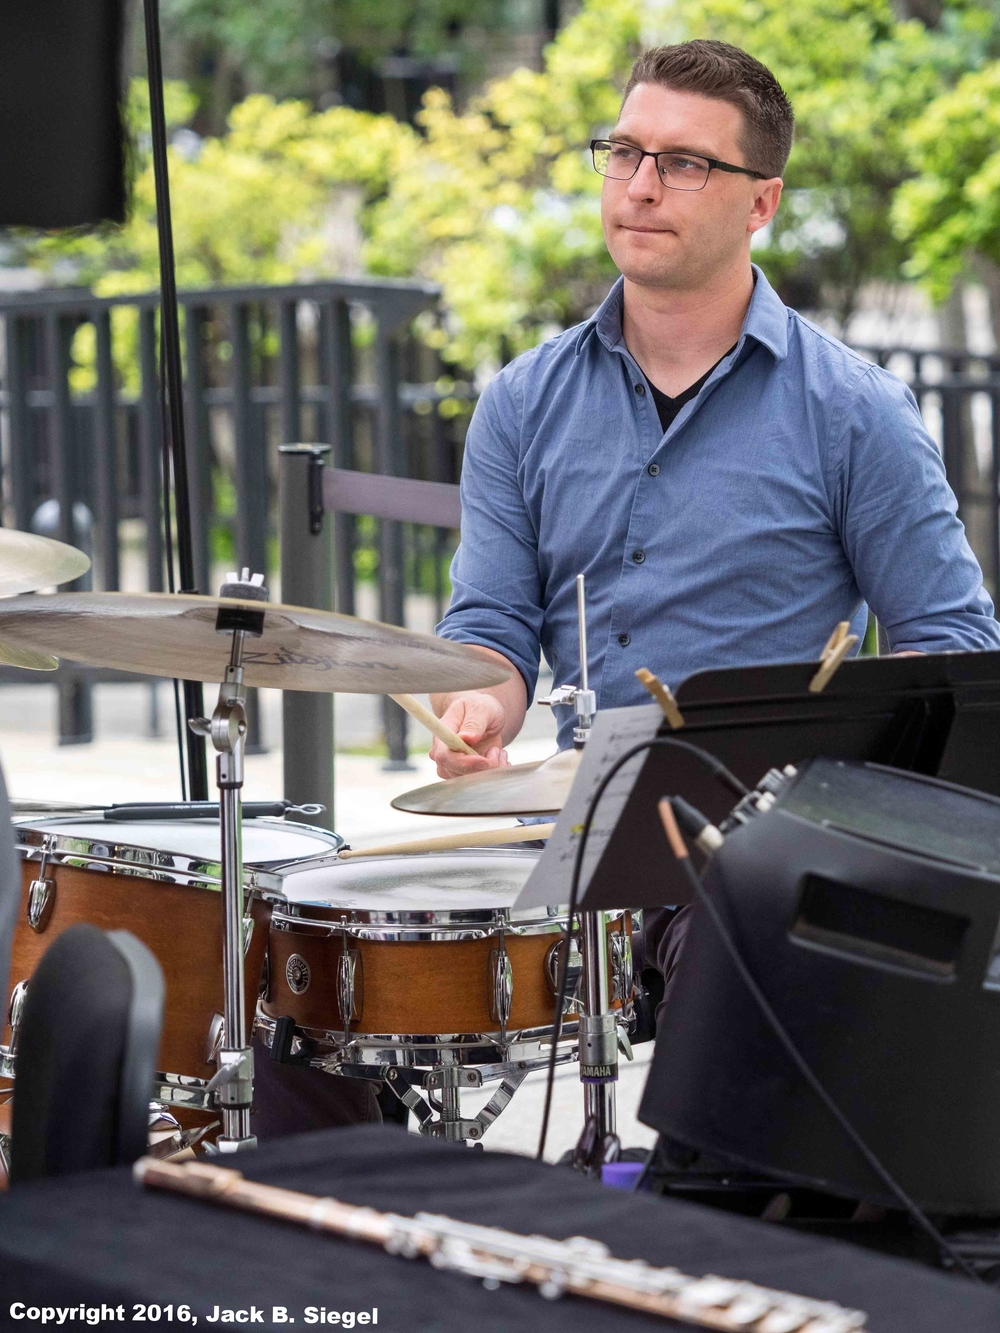 Jon Deitemeyer on Drums